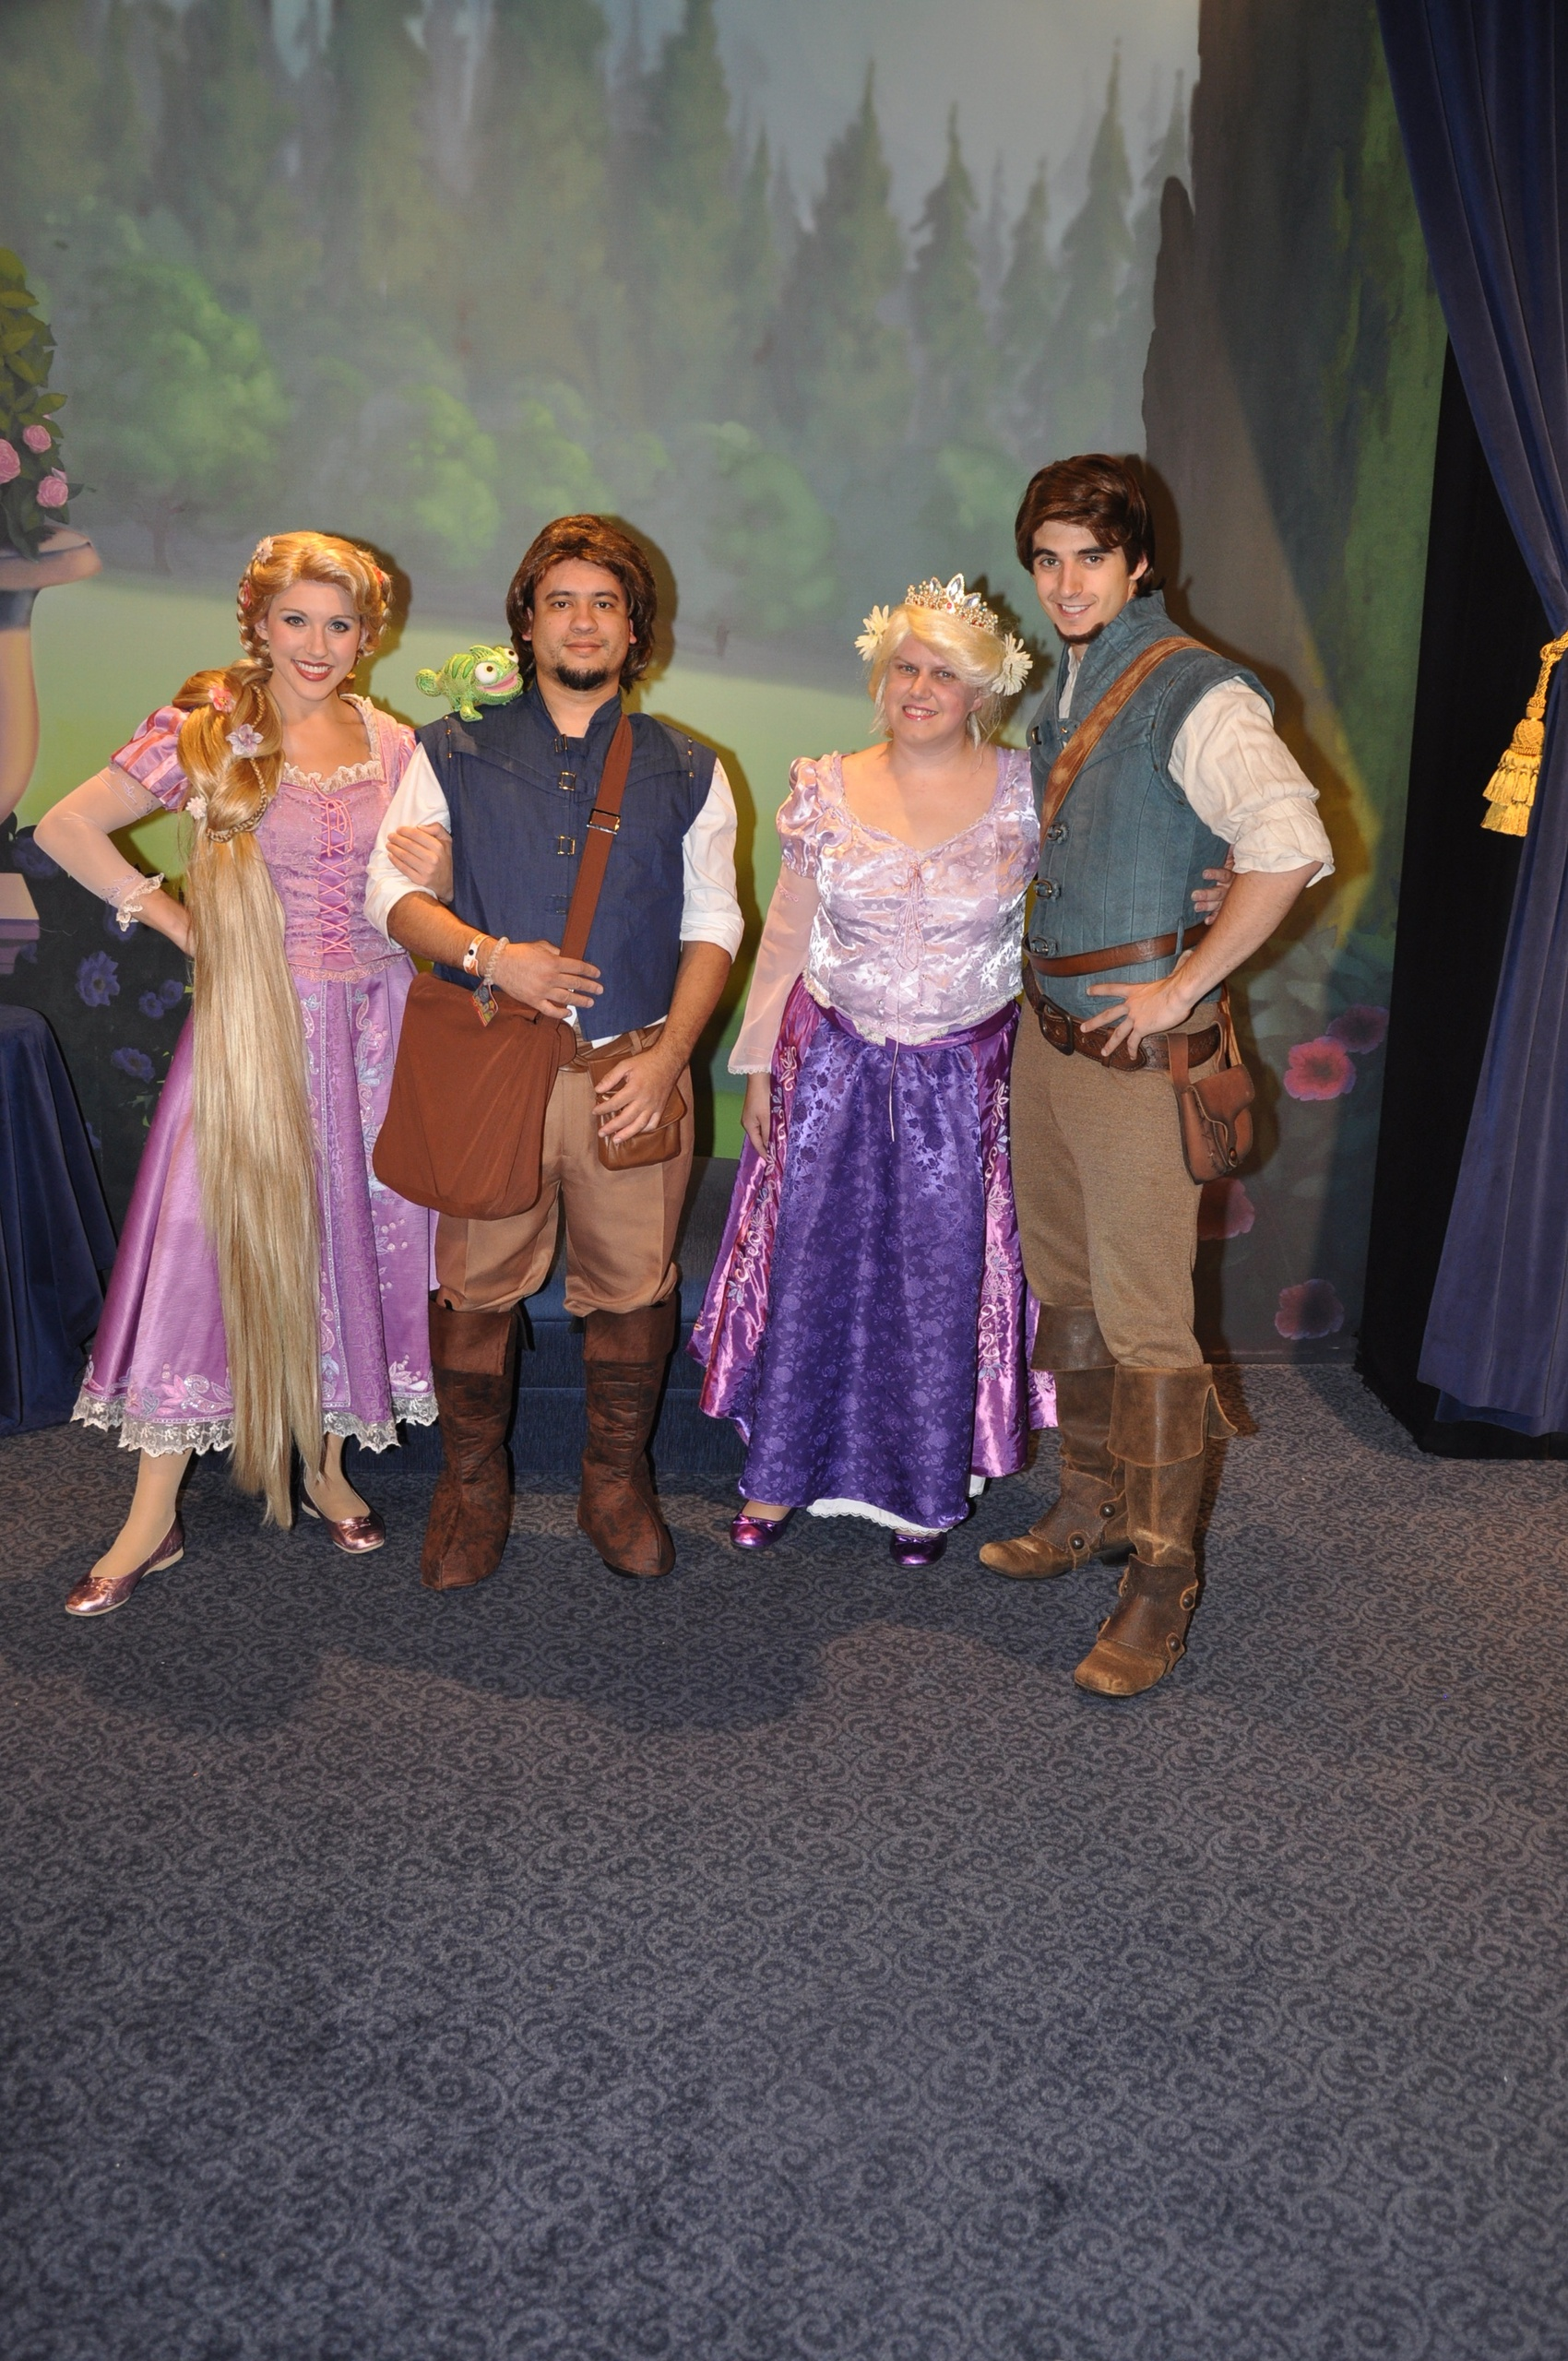 Disney character greetings images meet and greet with rapunzel disney character greetings images meet and greet with rapunzel flynn rider hd wallpaper and background photos m4hsunfo